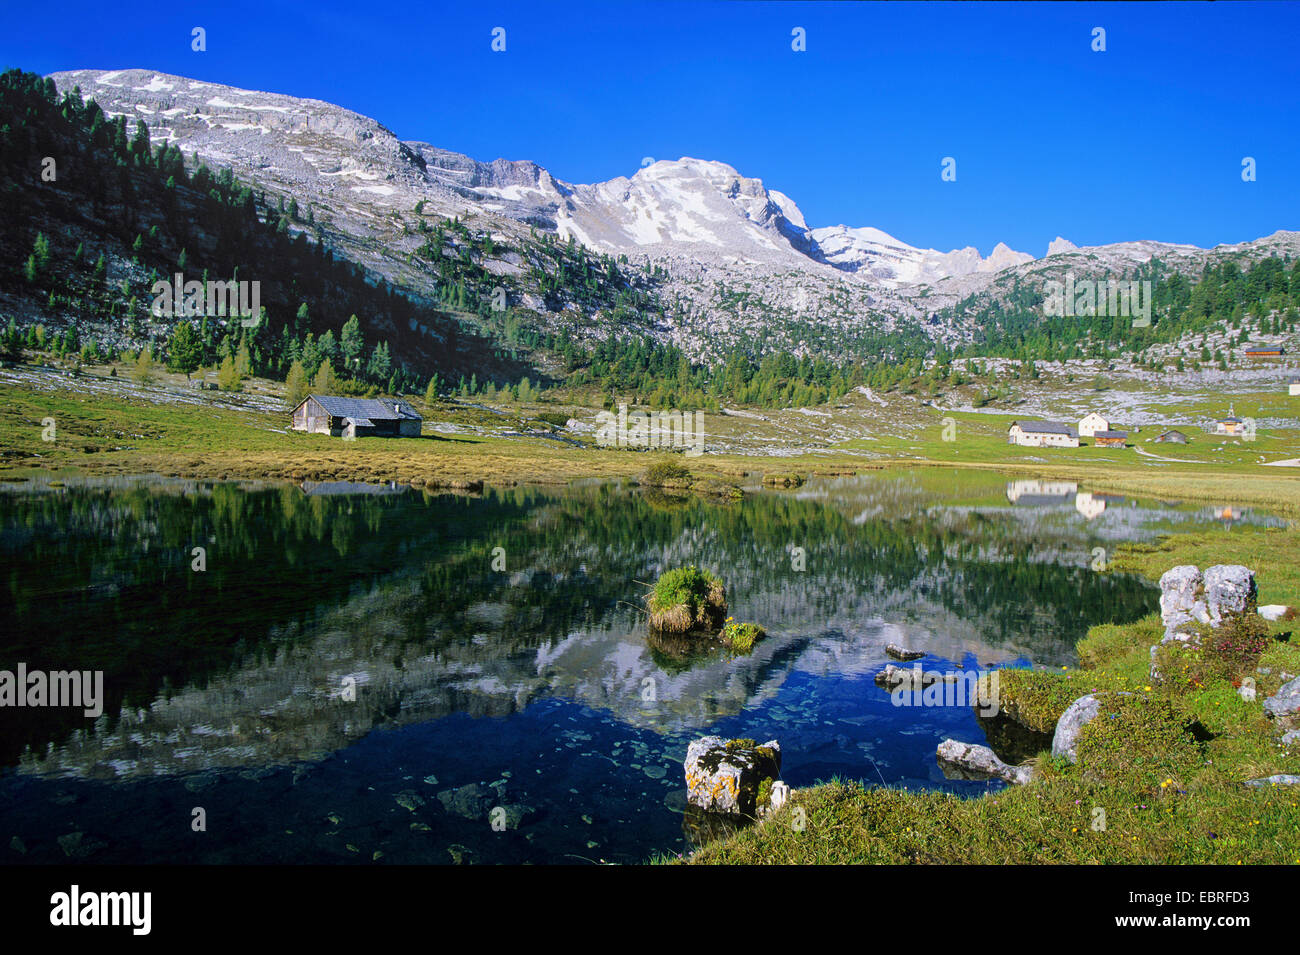 Fanes Alp and mountain lake, Italy, South Tyrol, Dolomiten - Stock Image